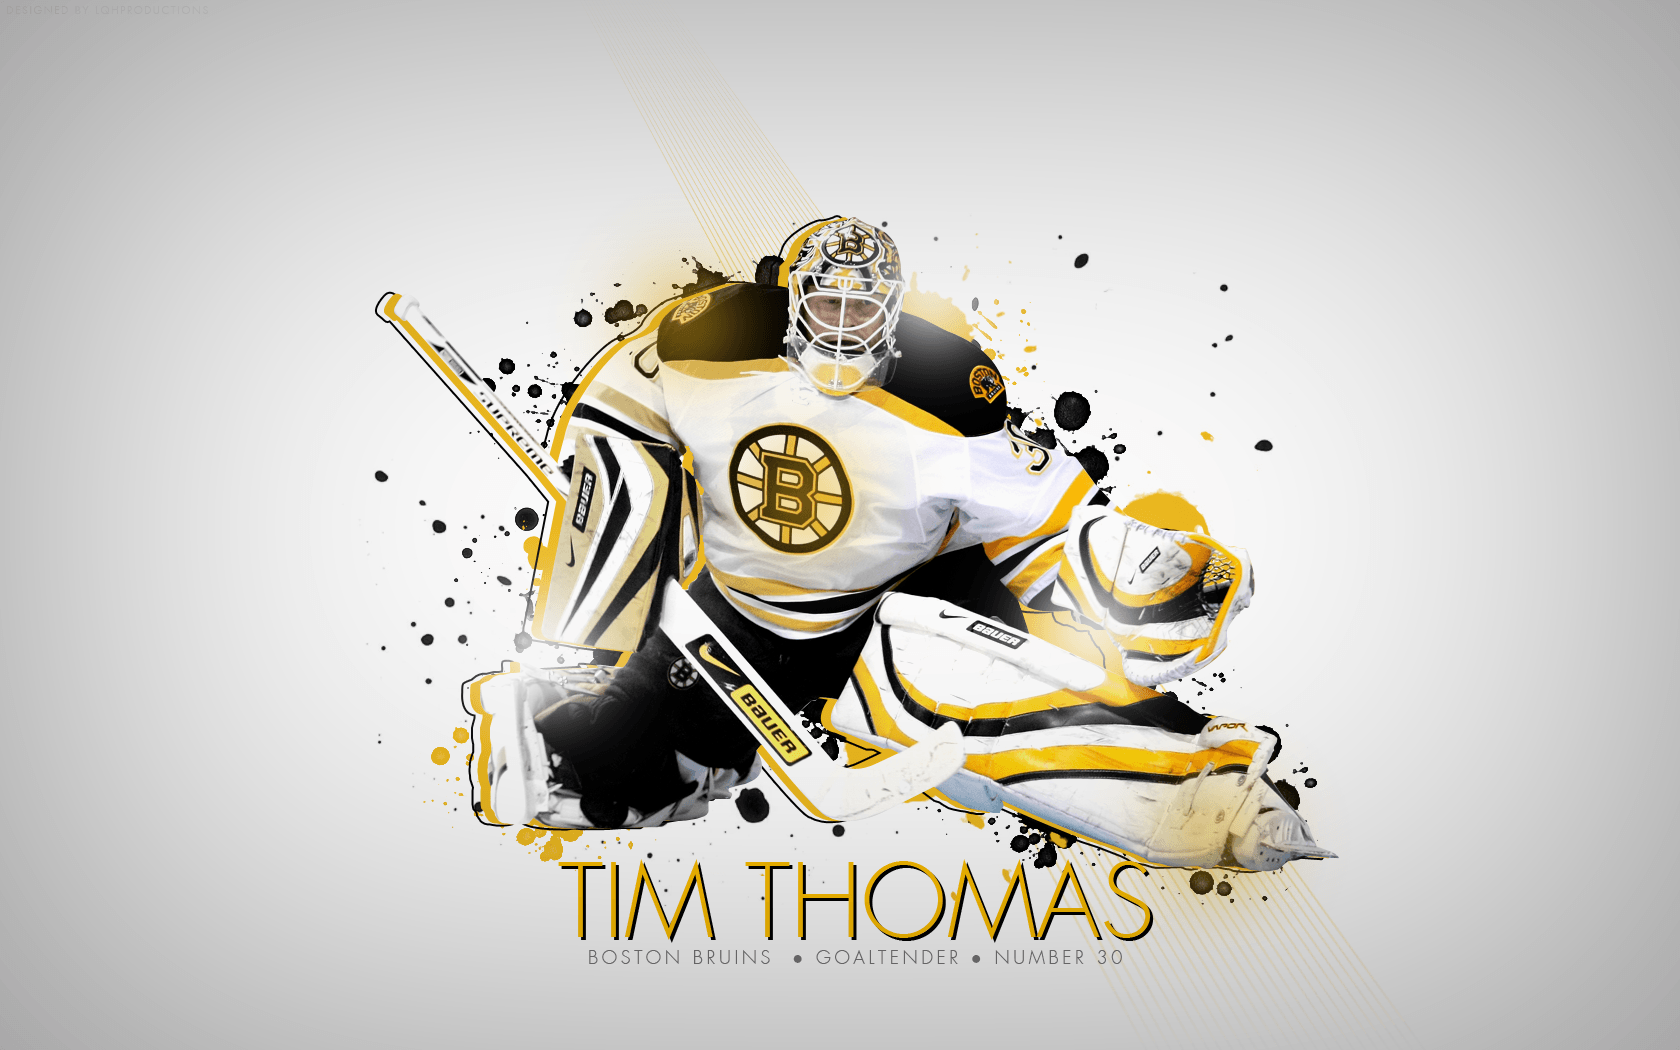 Tim Thomas Boston Bruins Wallpaper 2013